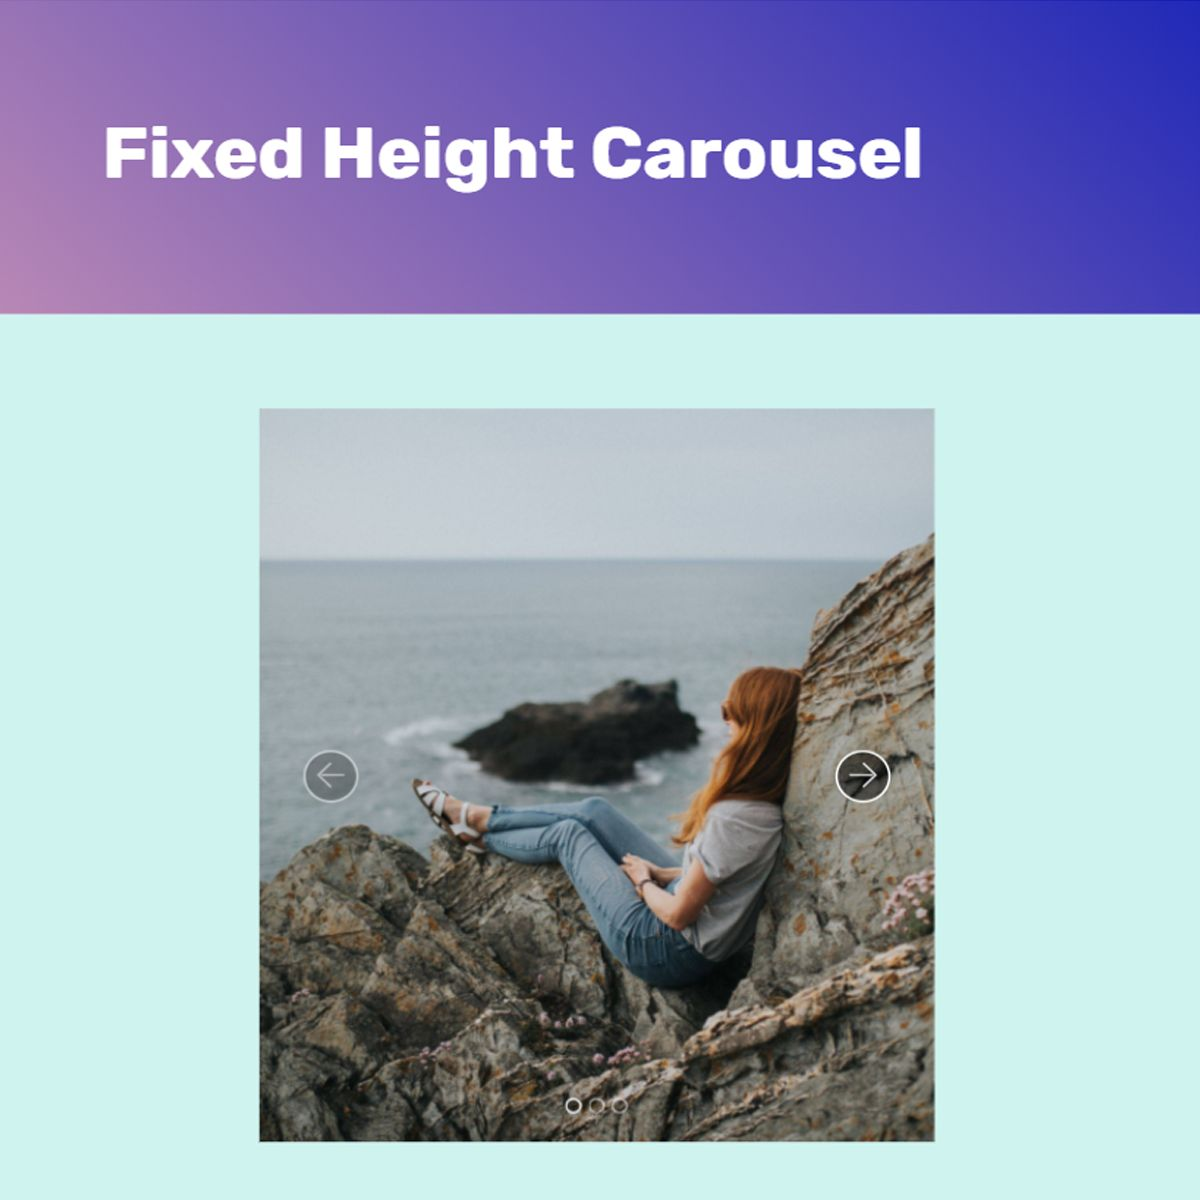 CSS3 Bootstrap Image Carousel